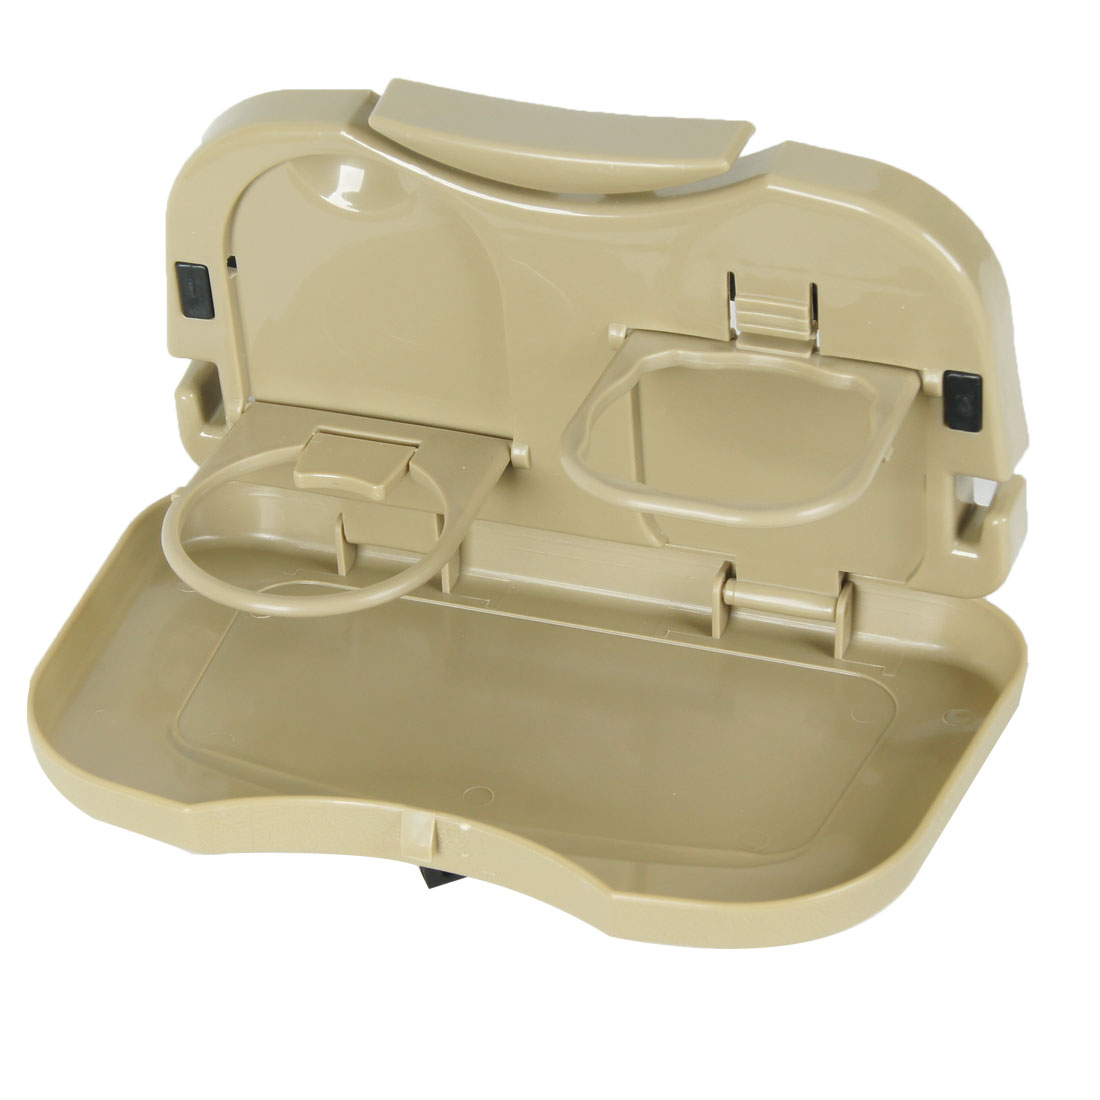 Khaki Foldable Drink Holder Car Auto Multifunctional Tray